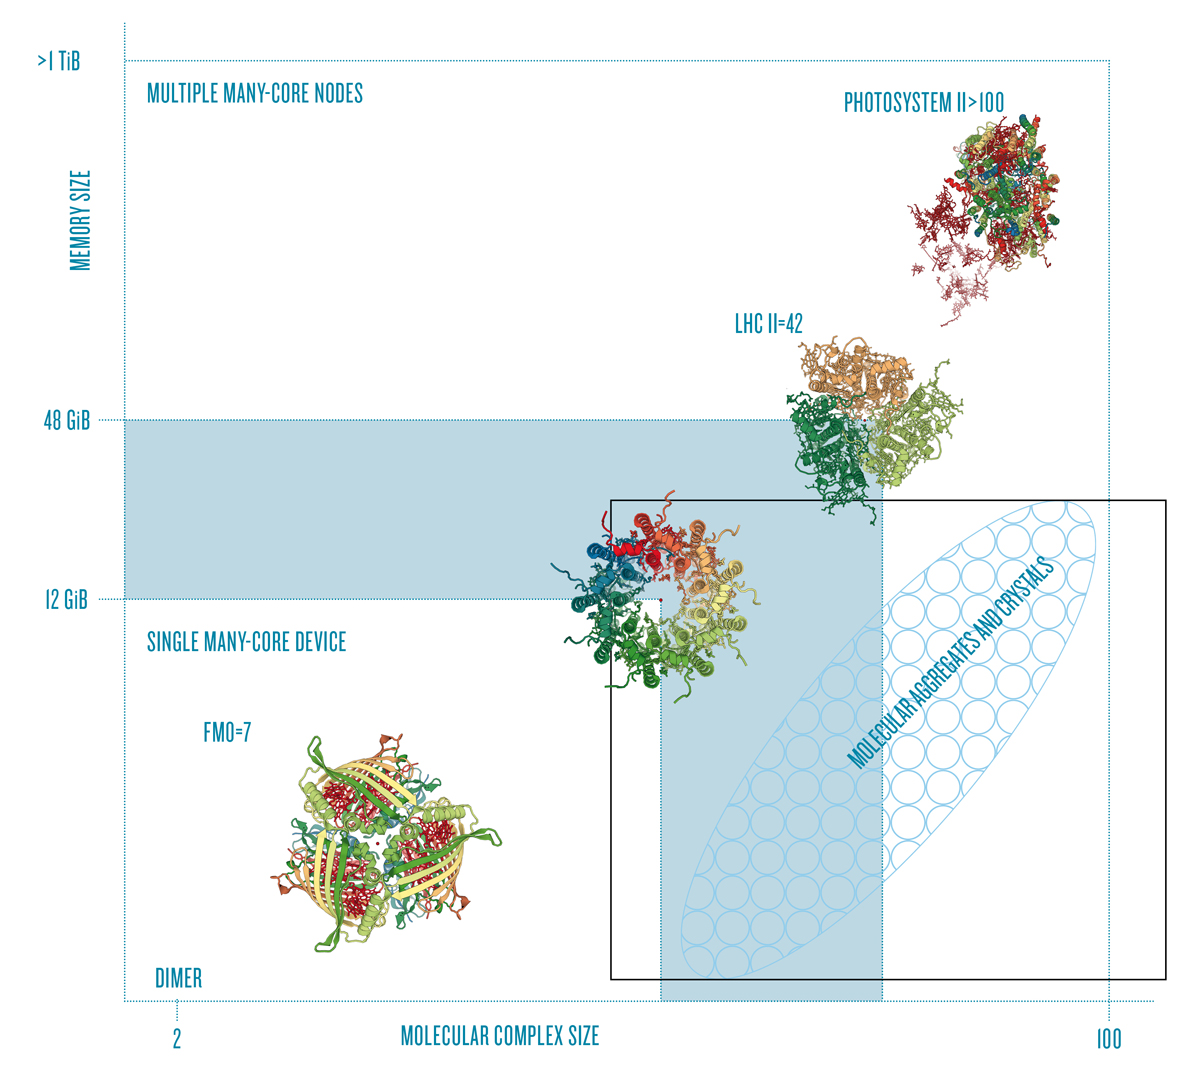 Molecular complex size vs. memory requirements for the HEOM method. Solutions for larger photosynthetic complexes found in the light harvesting system 2 [9] and photosystem II [10] can only be acquired by scaling up to many compute nodes.